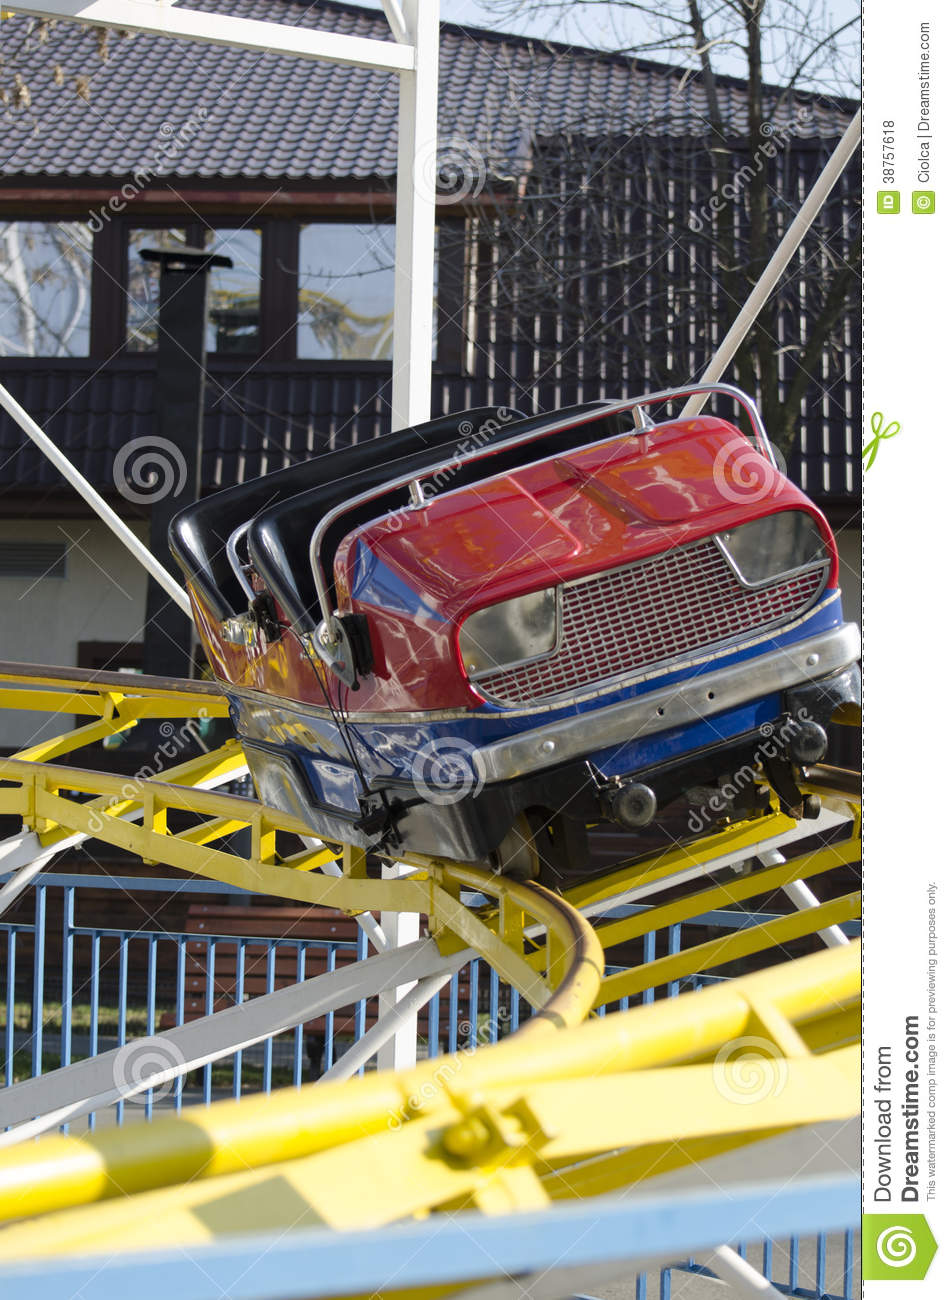 Roller coaster car stock photo. Image of carousel ...